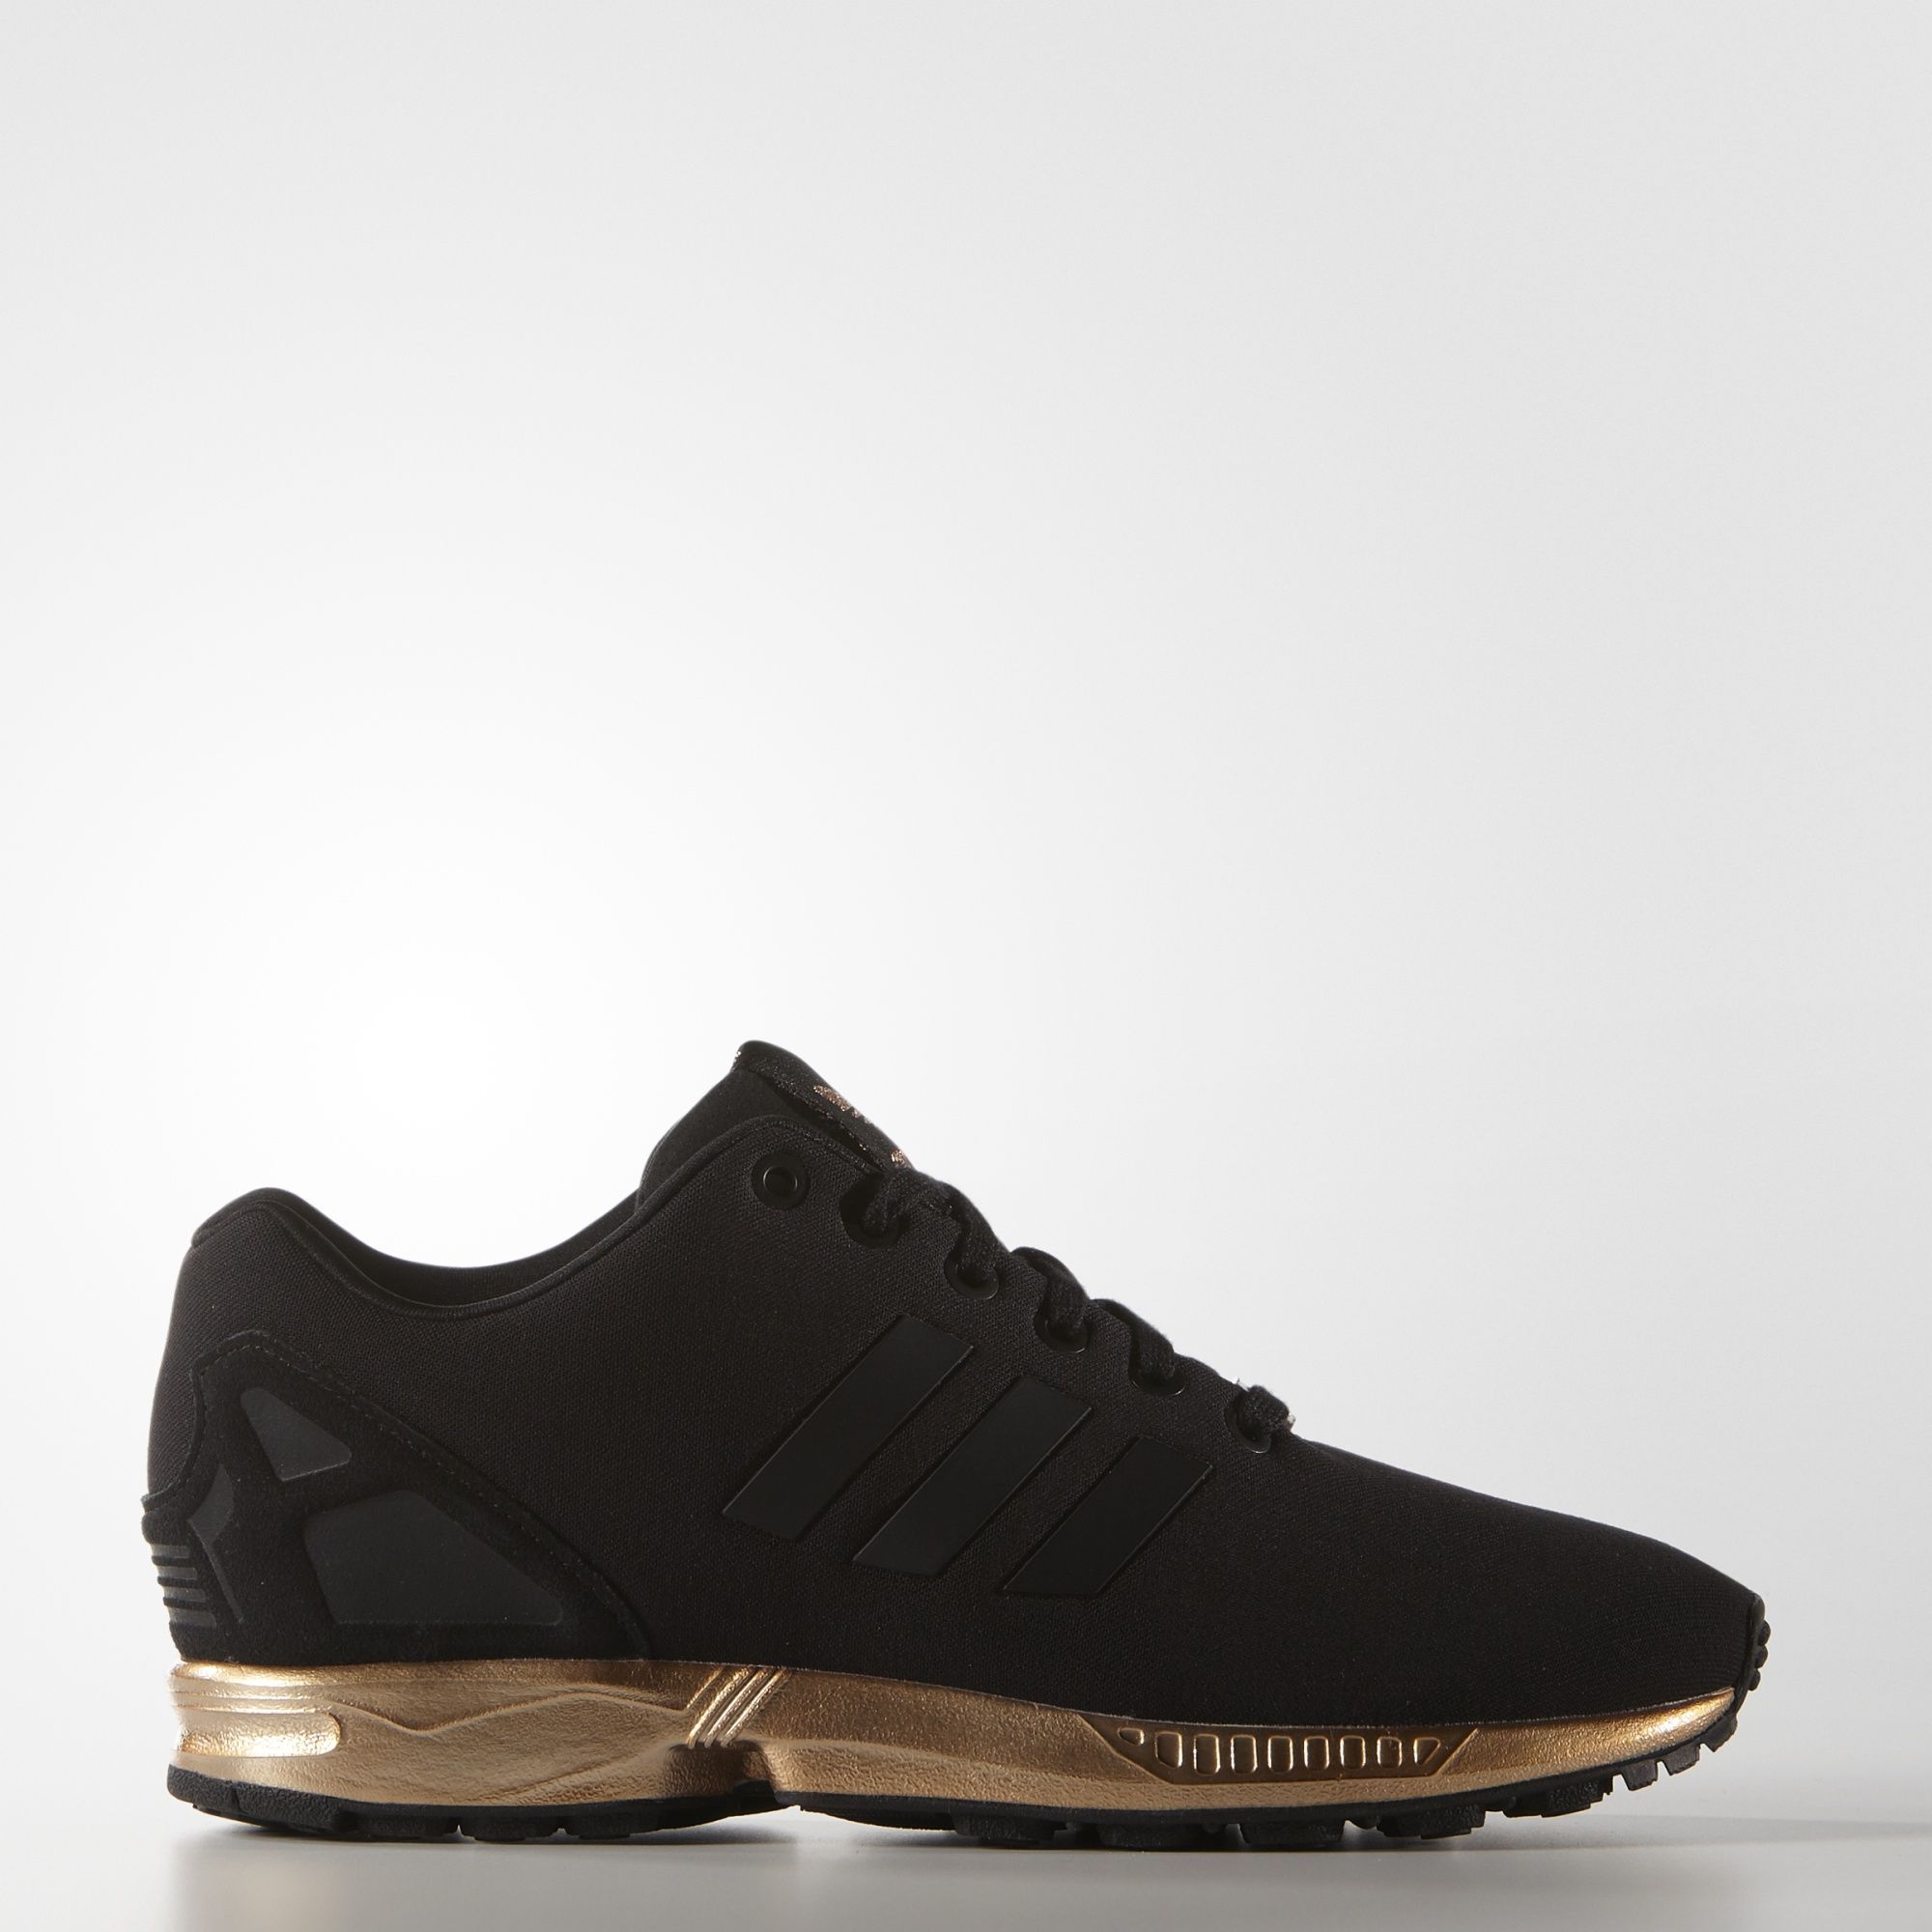 zx flux adidas black and copper